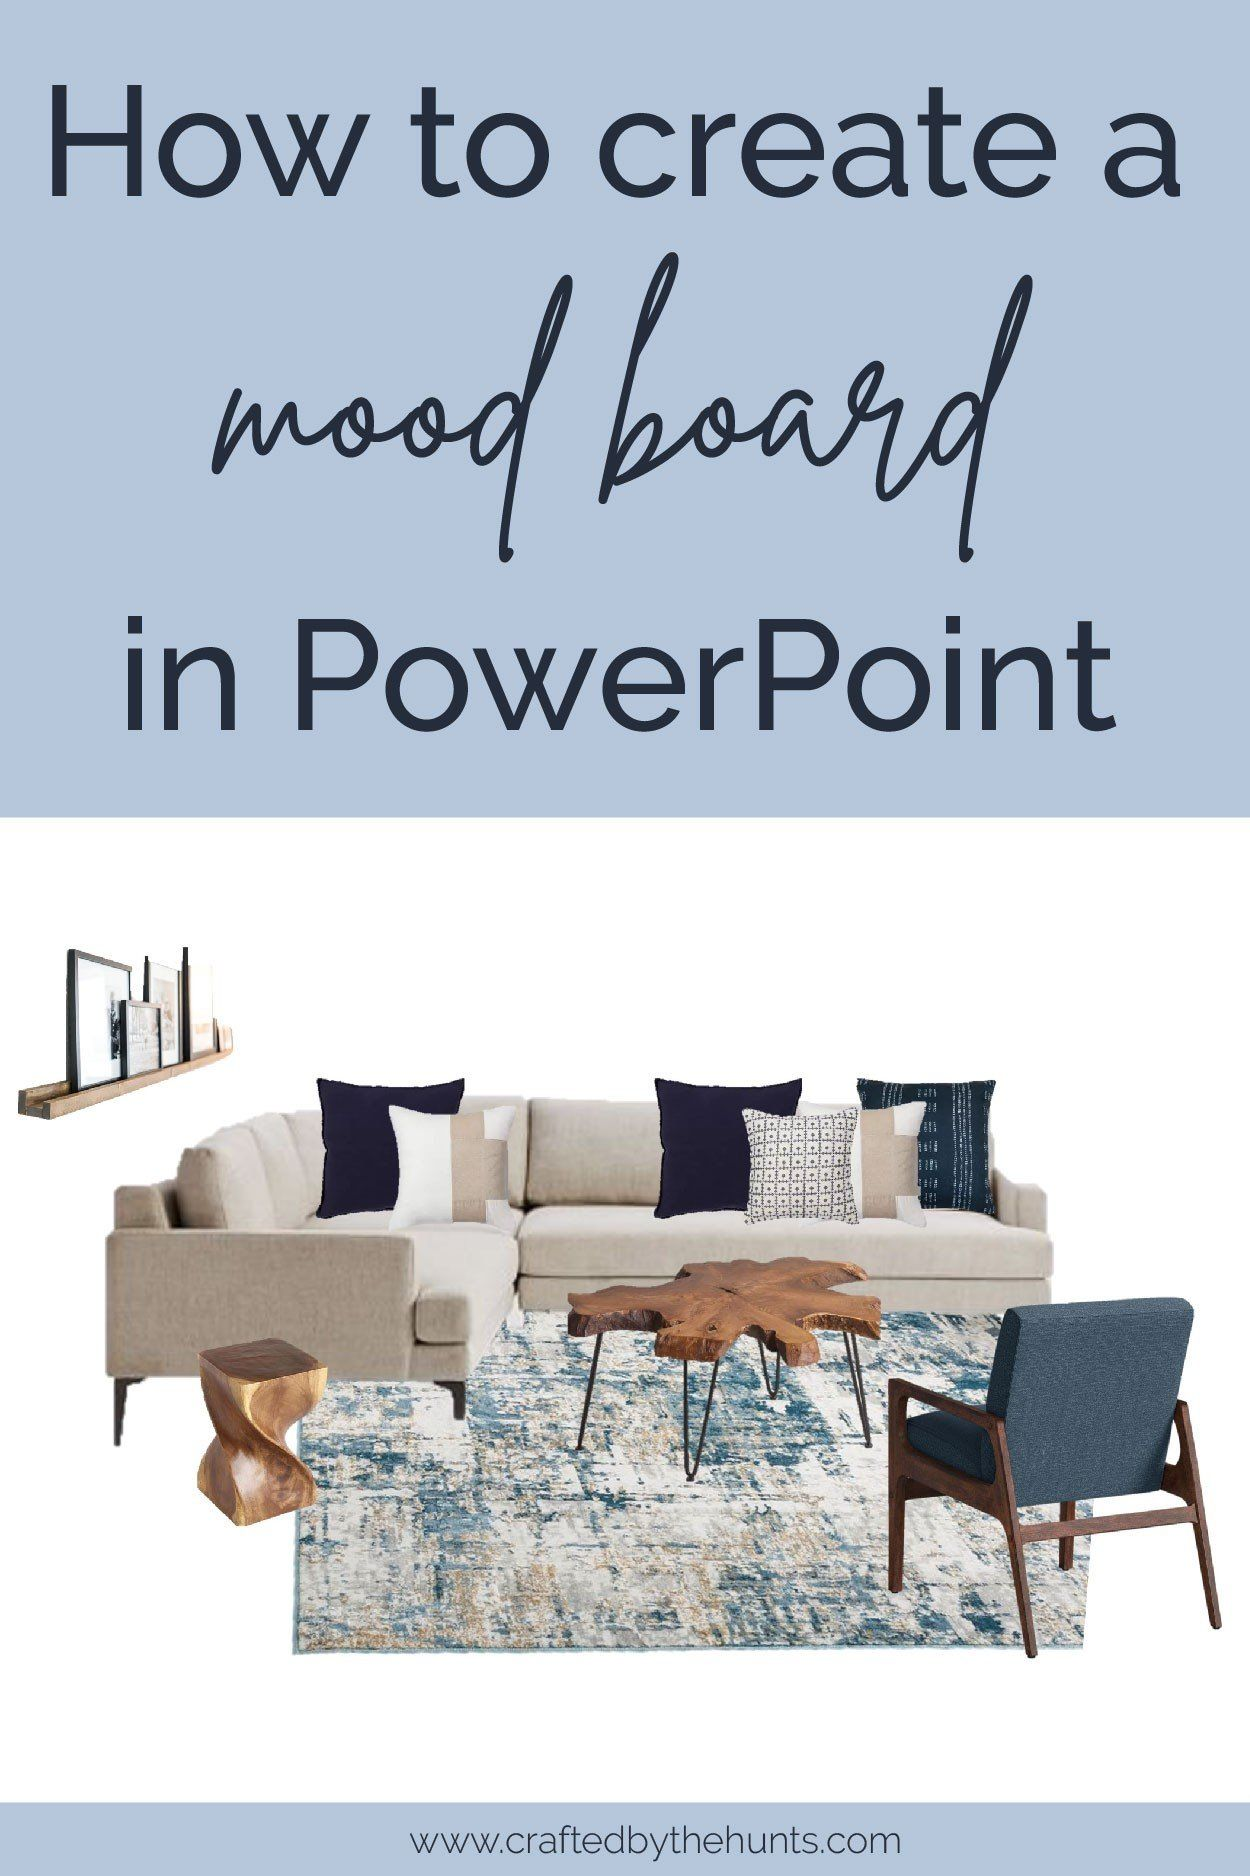 How to Create a Mood Board in PowerPoint   Crafted by the Hunts ...